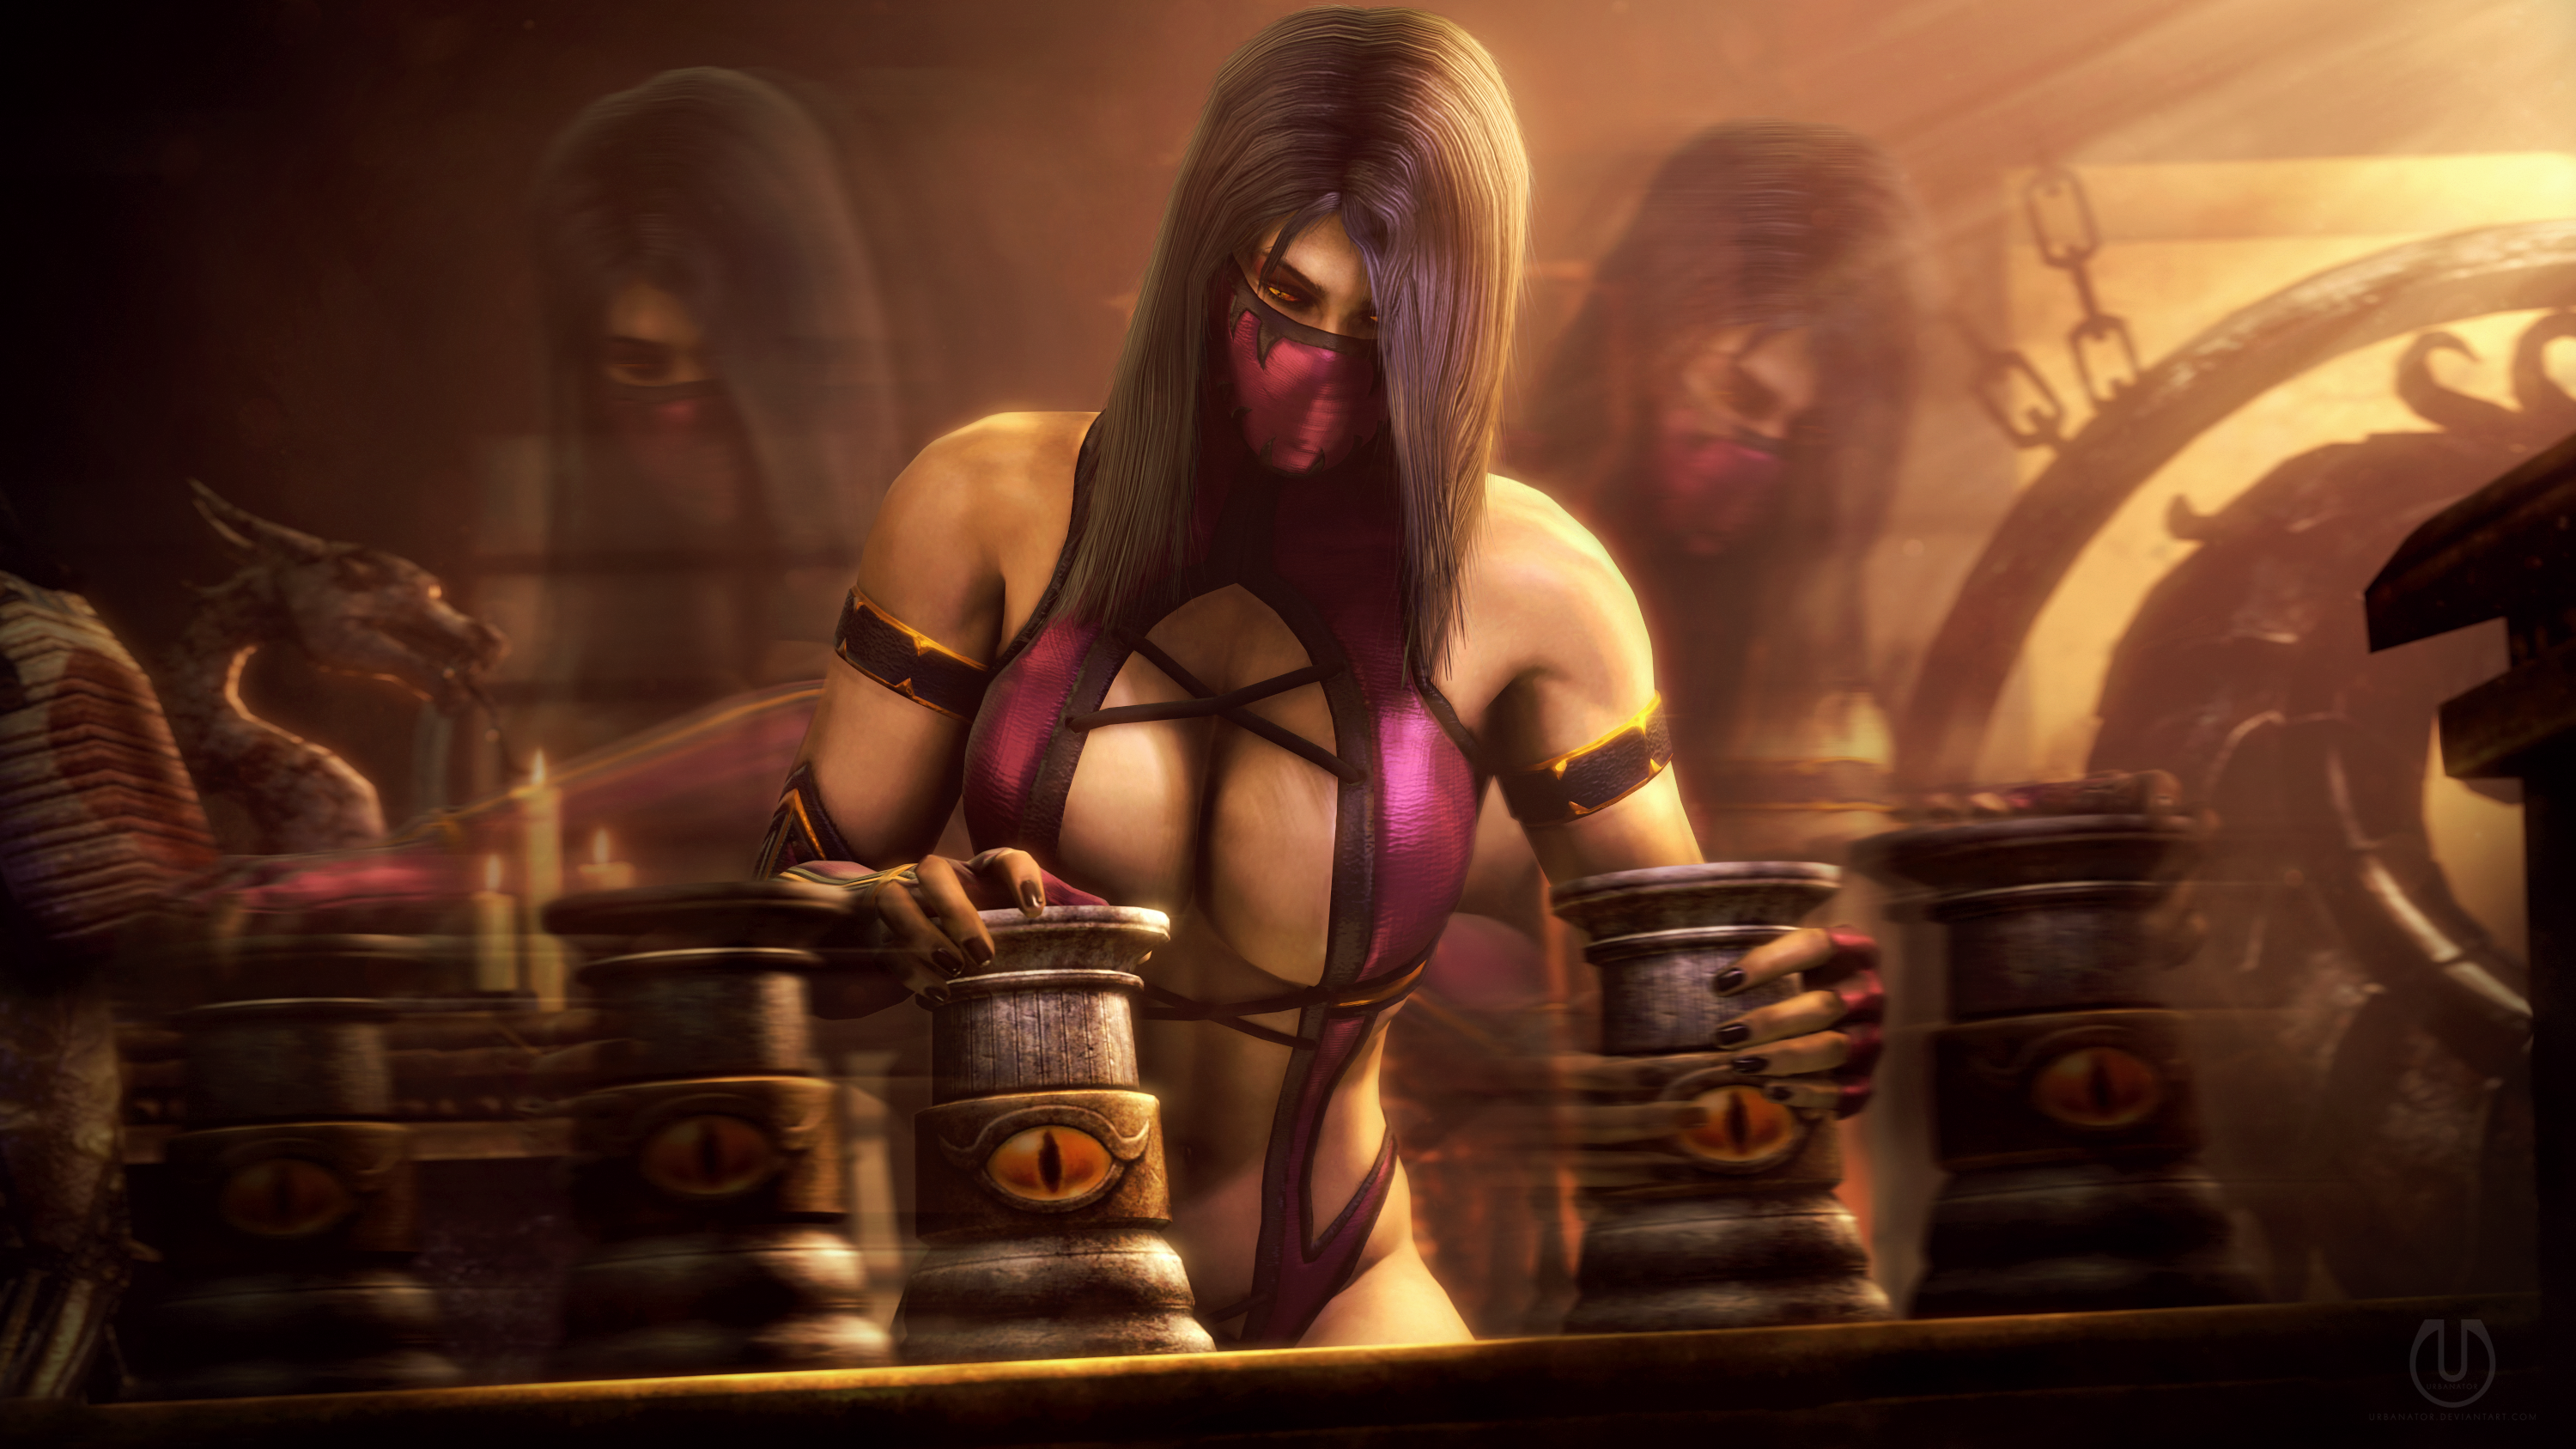 Testing Your Sight with Mileena 4 by Urbanator